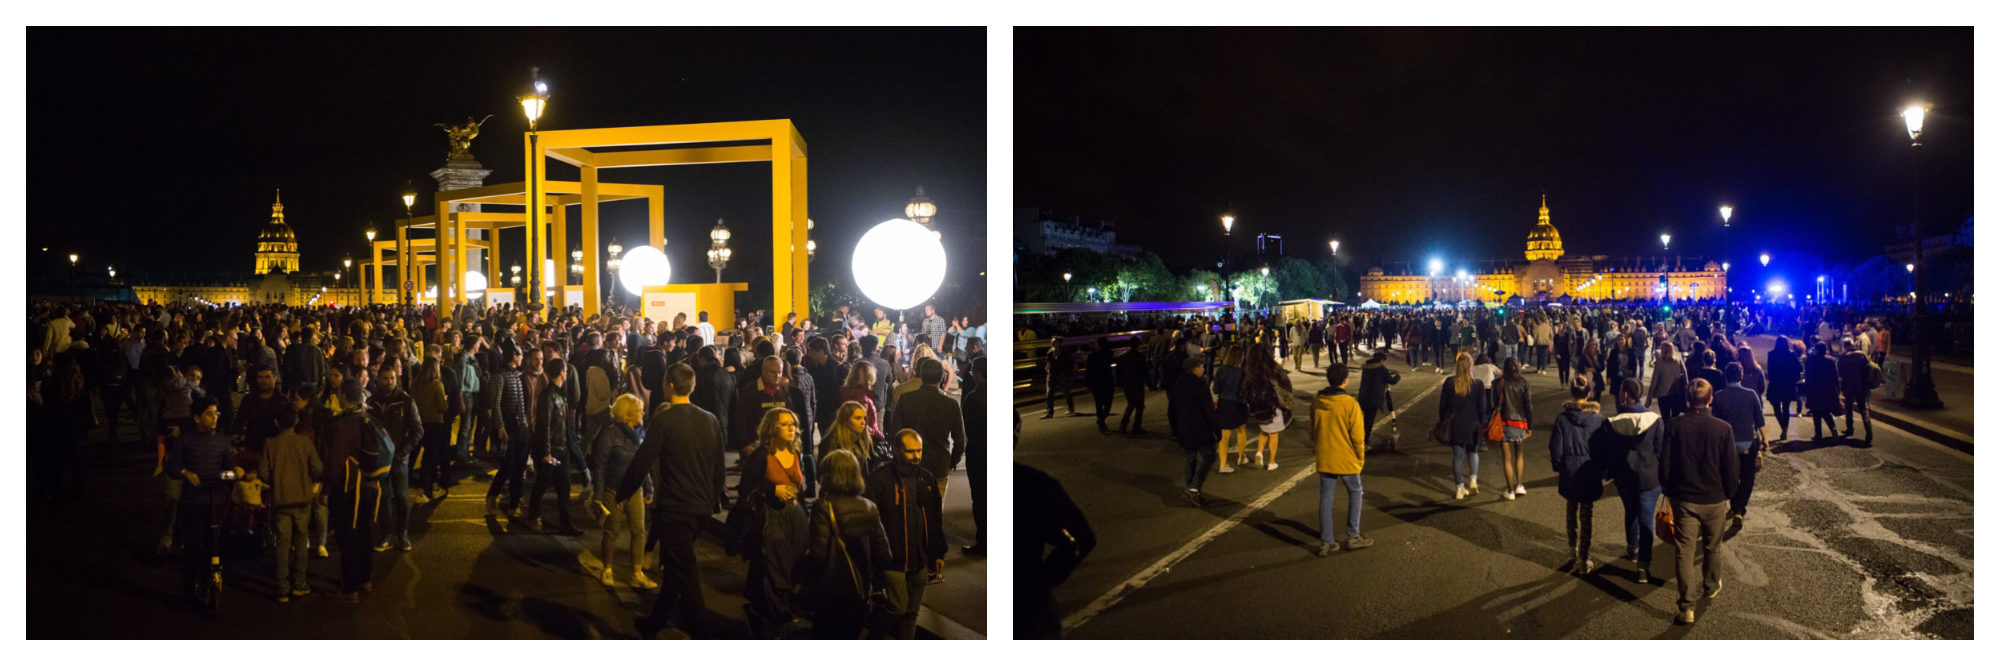 The crowds exploring the art installations around Paris at night during Nuit Blanche.